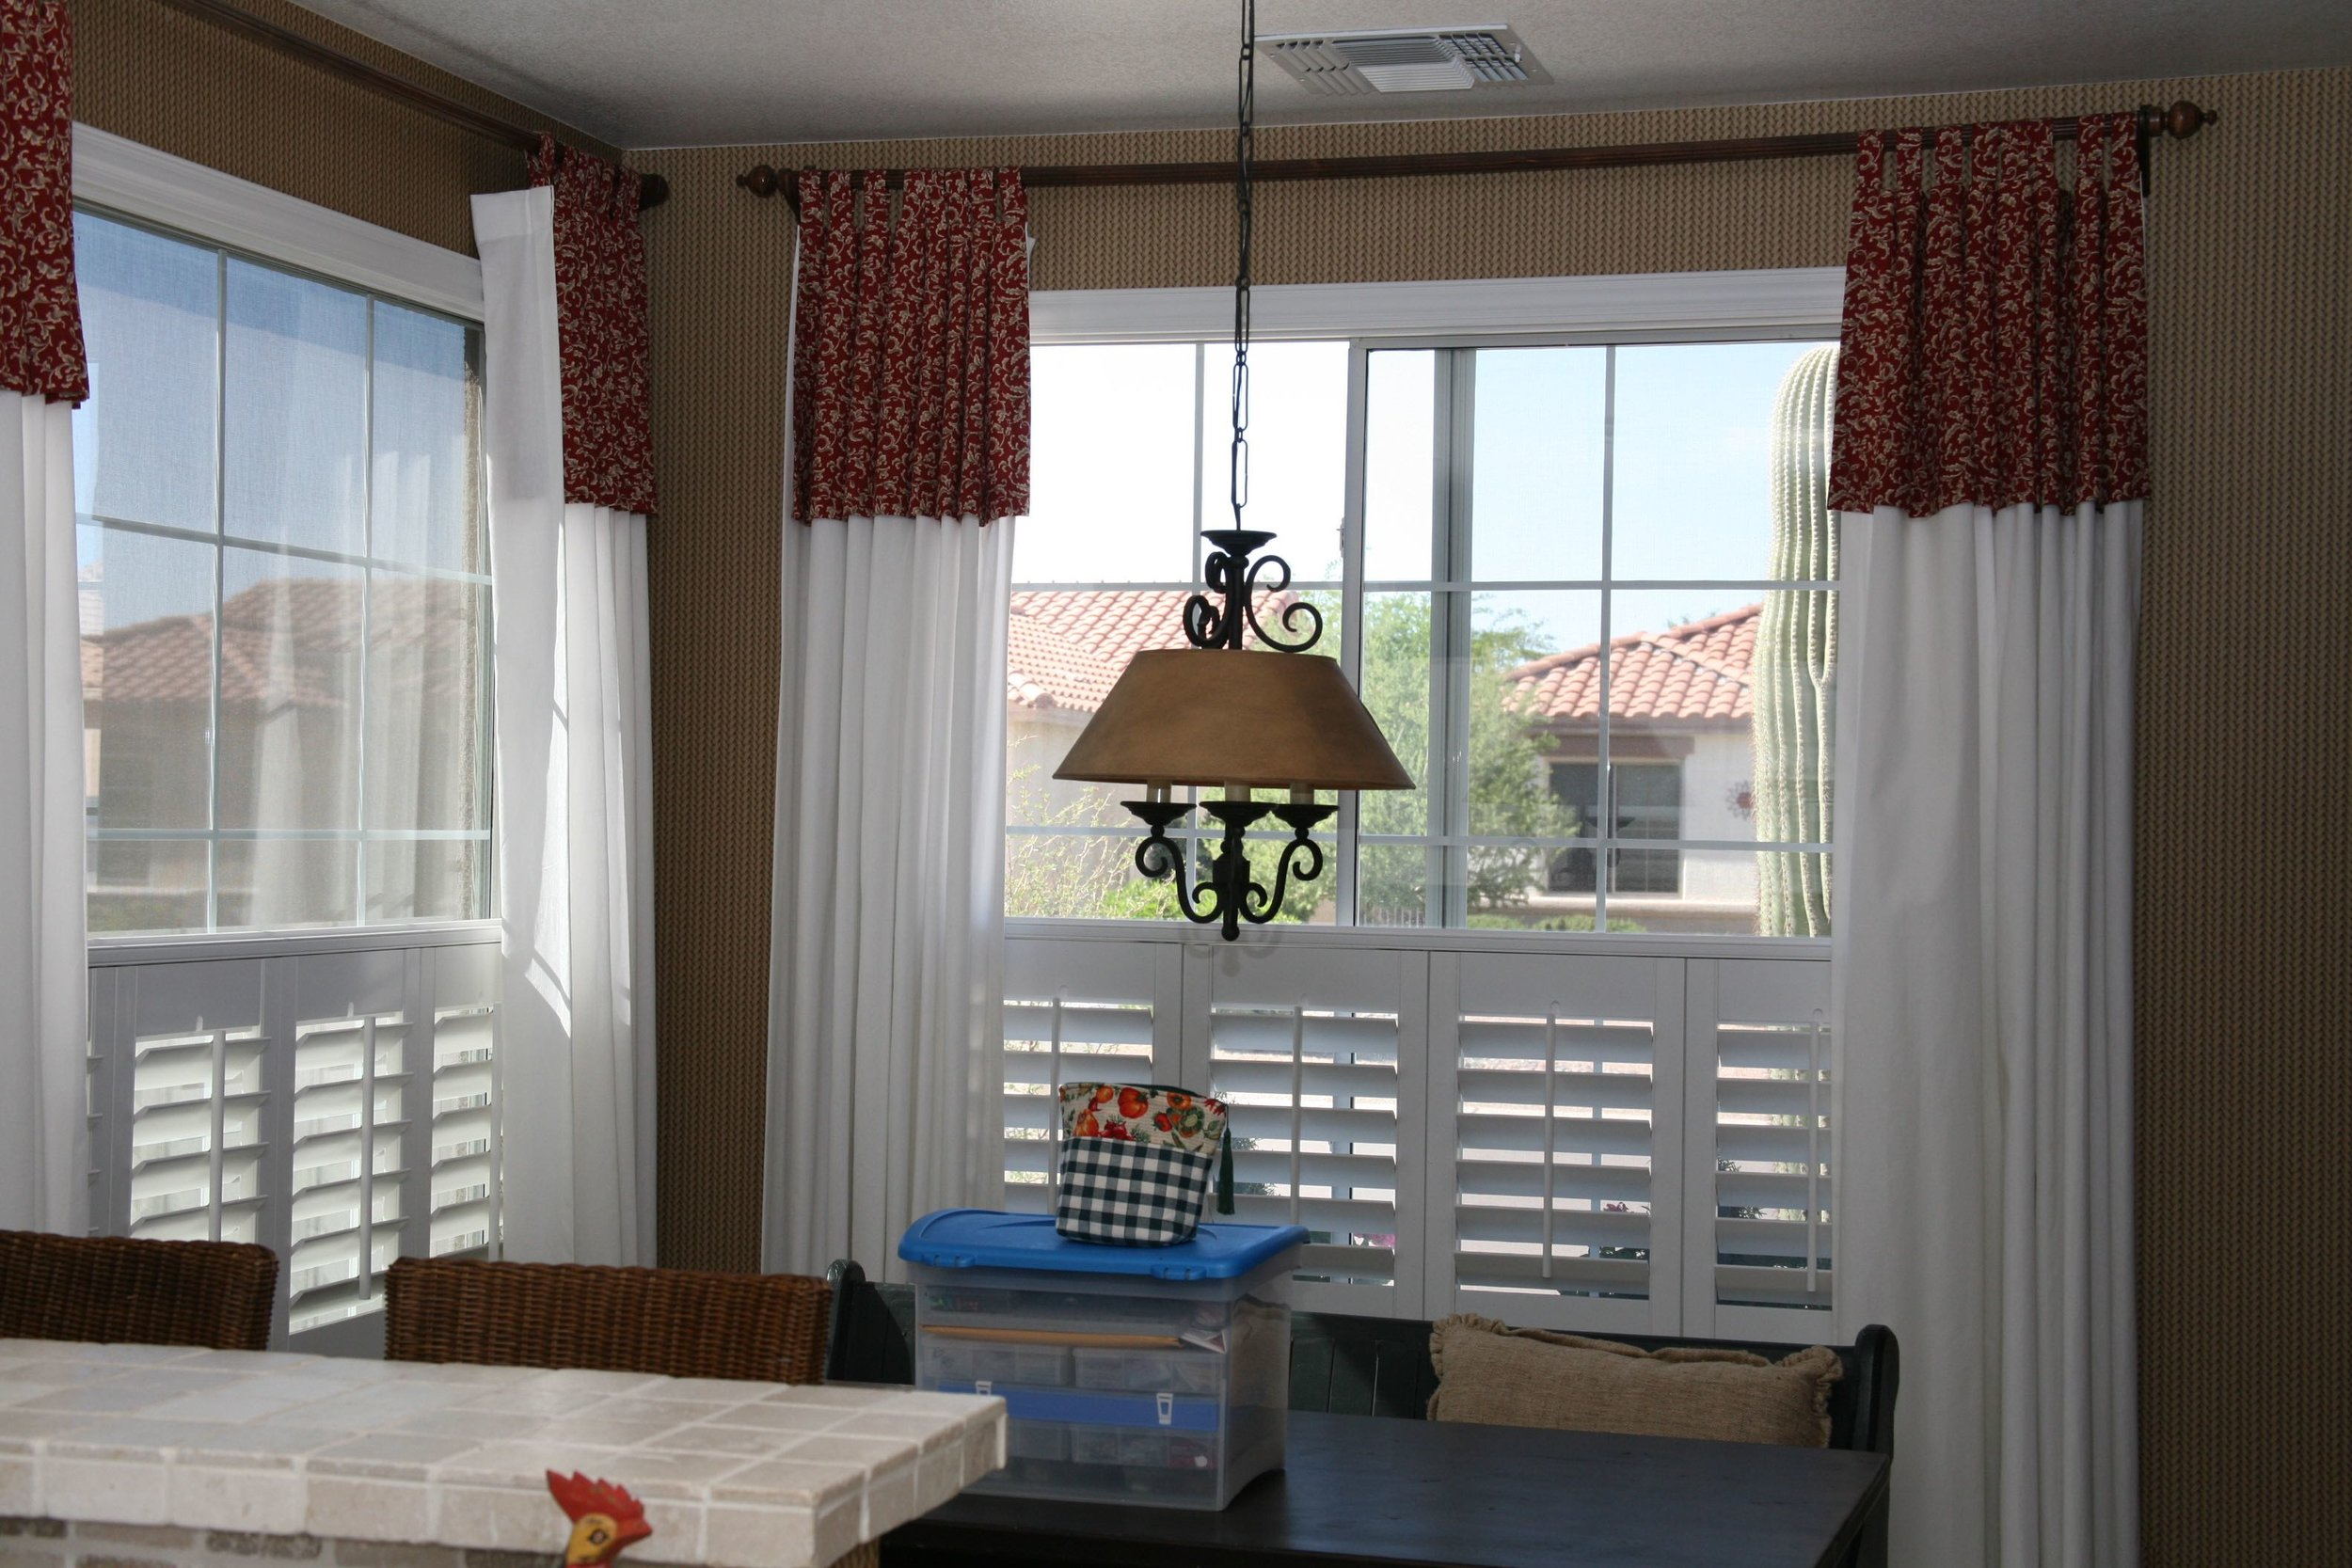 Cafe-style shutters provide privacy in areas where there is no light control issue.